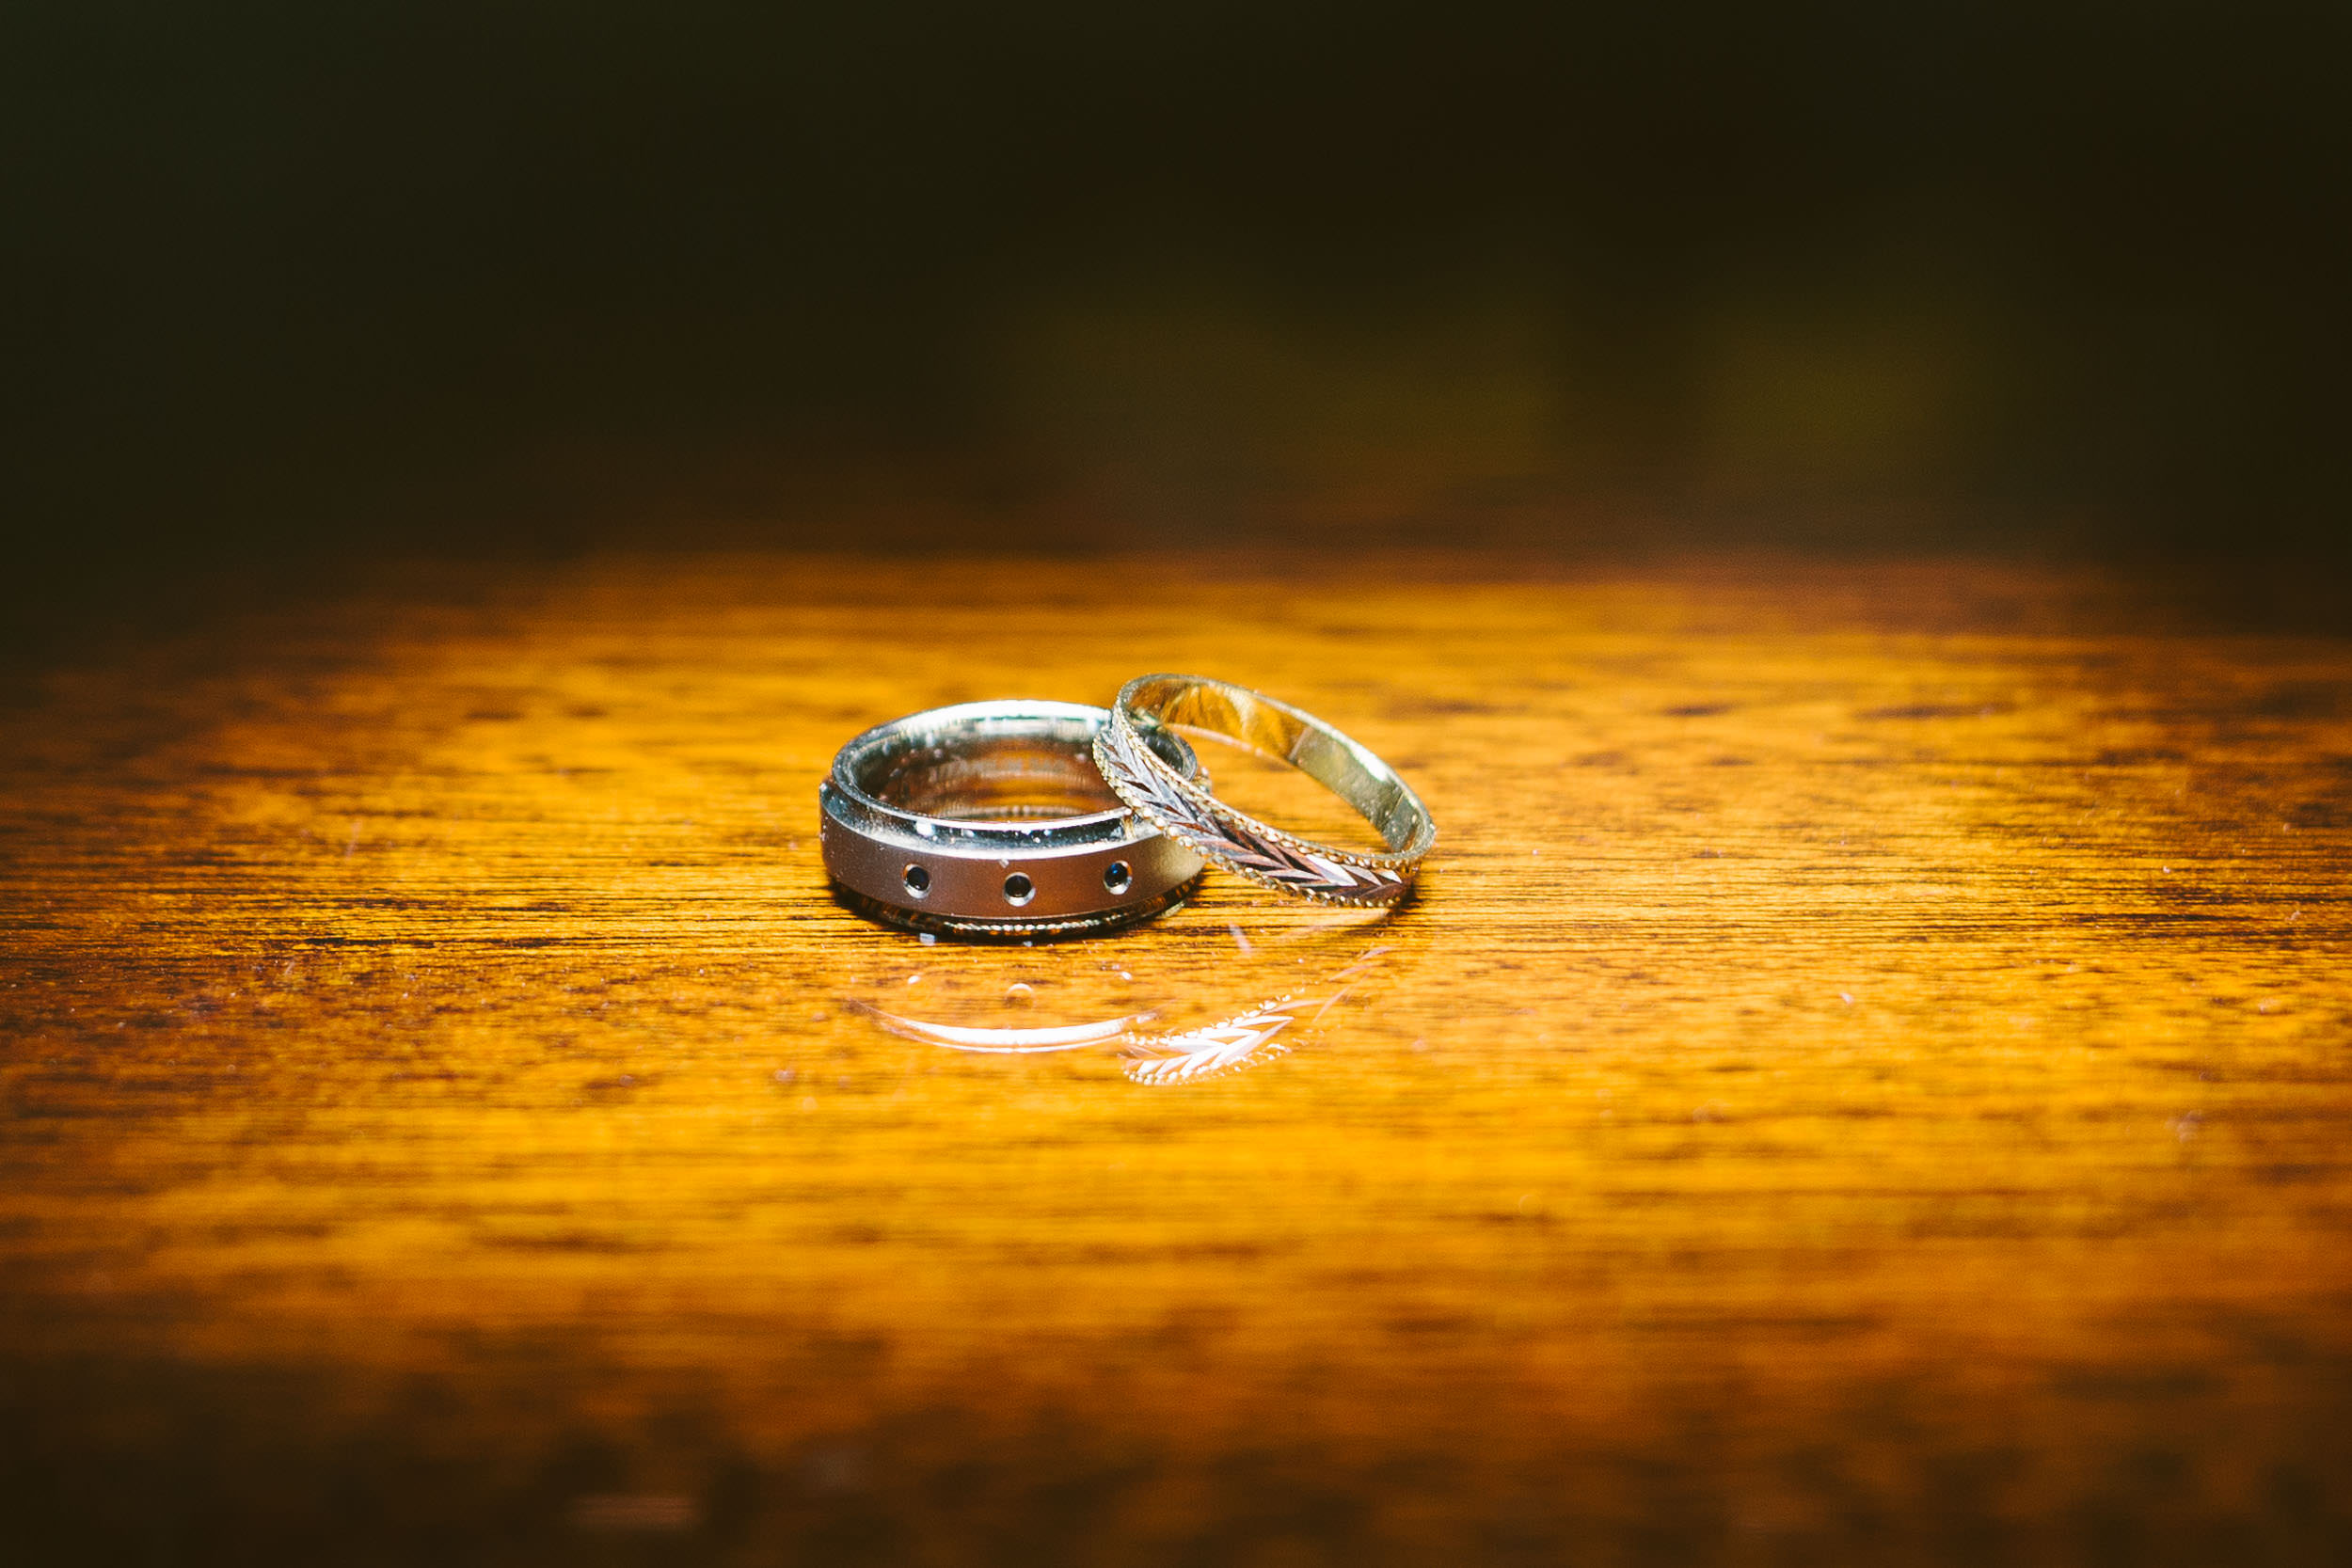 Wedding rings ling on a wooden table